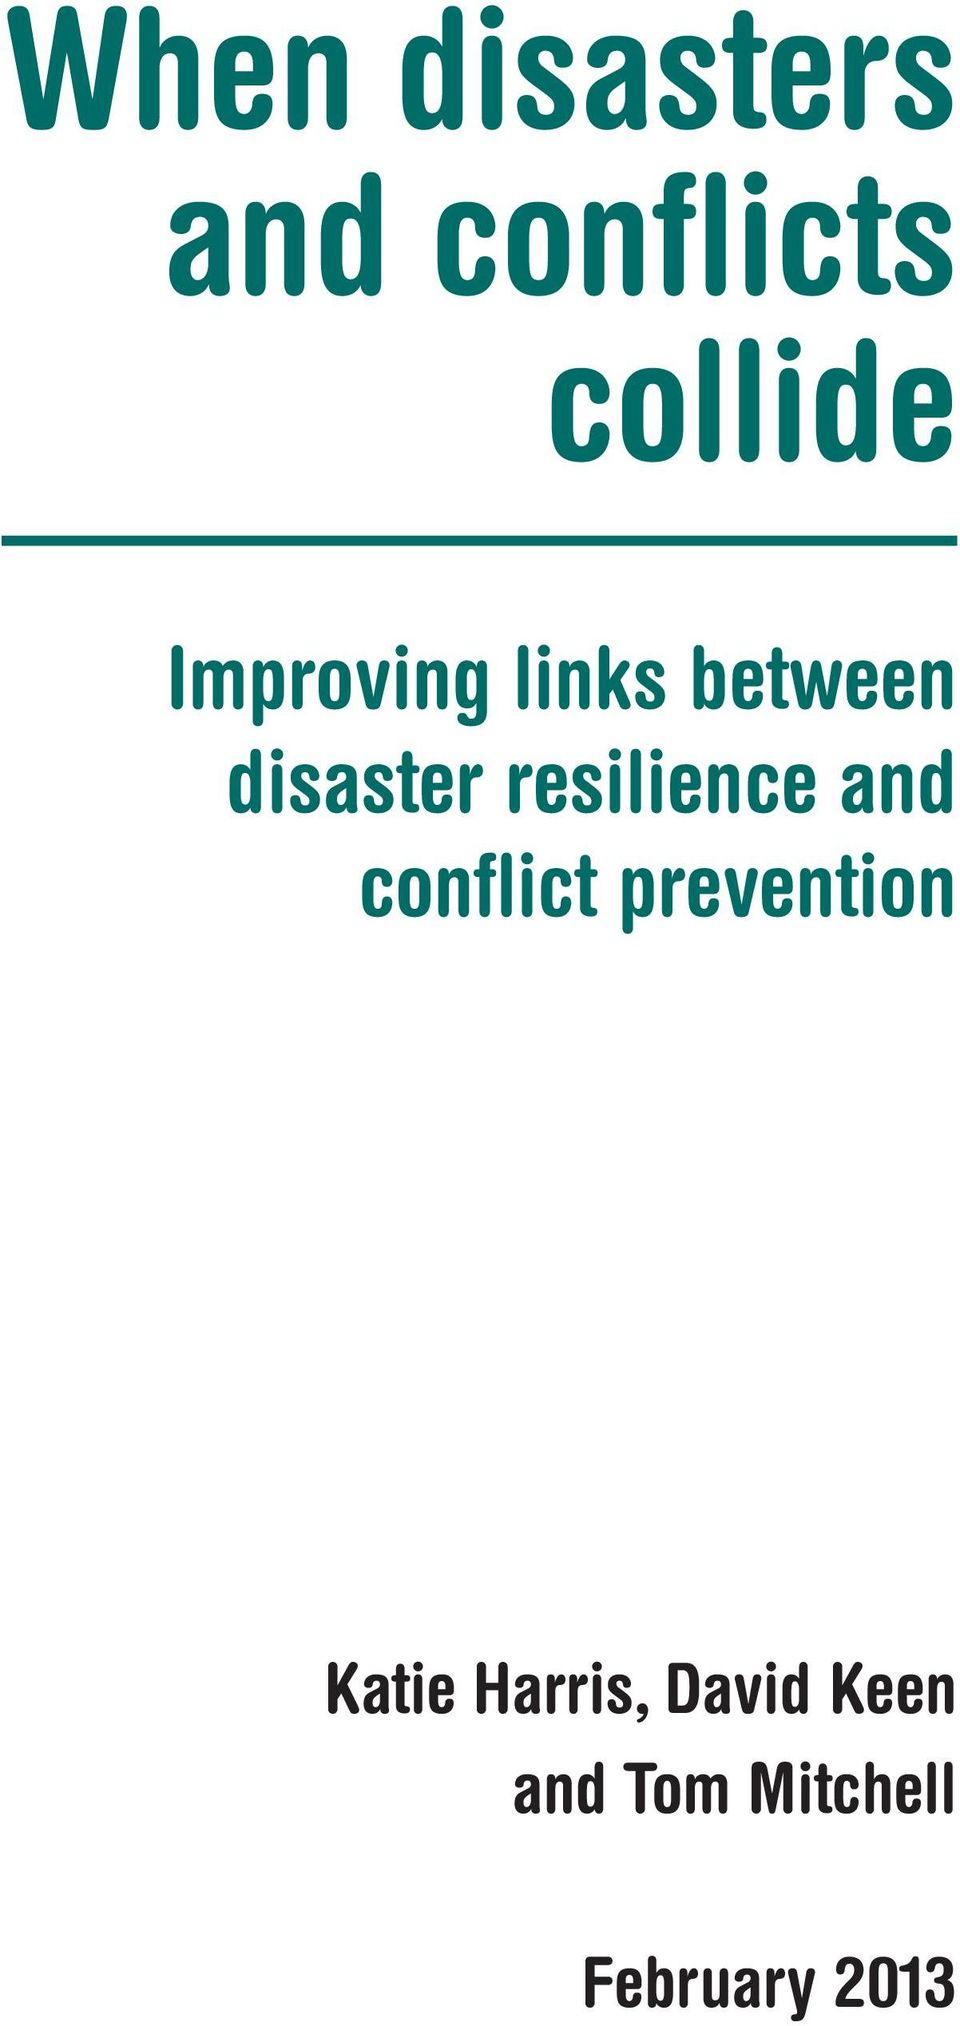 resilience and conflict prevention